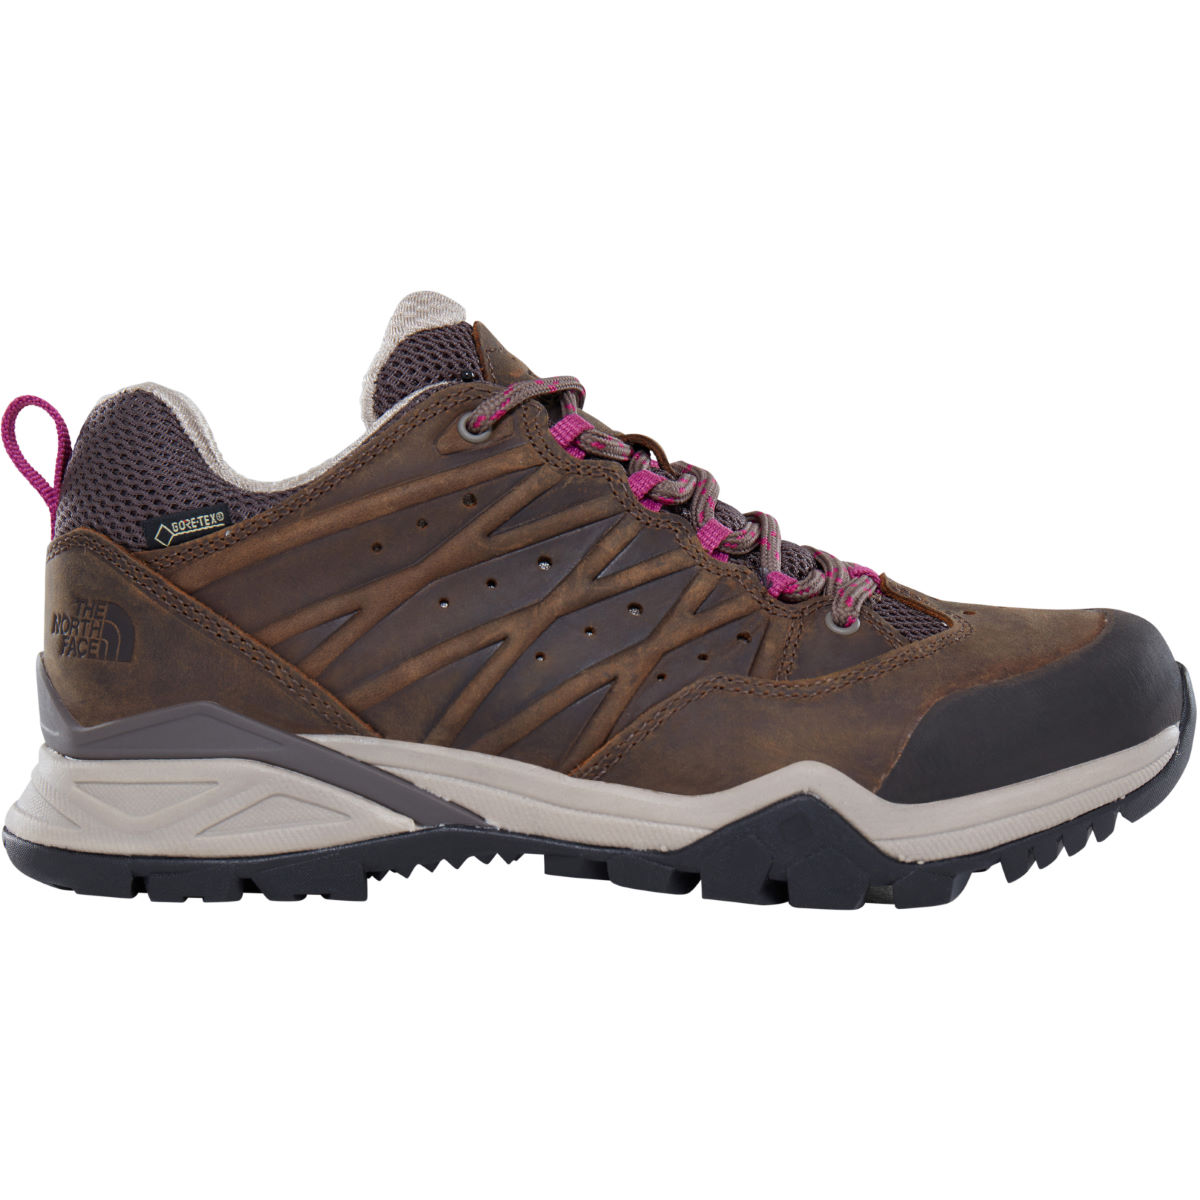 The North Face Women's Hedgehog Hike II GTX Shoes   Shoes